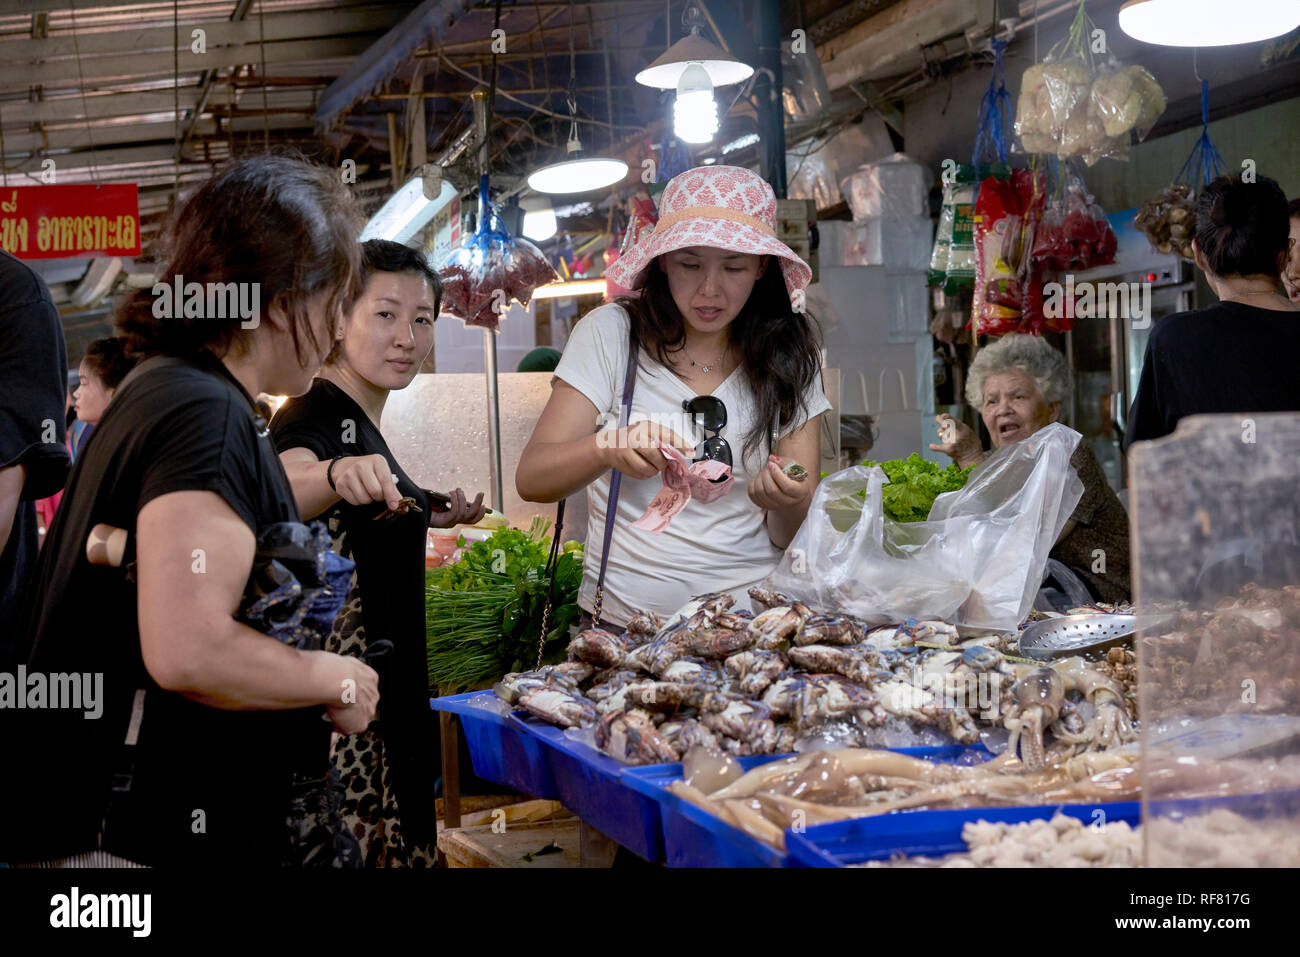 Thailand food market. Japanese tourists buying from a seafood stall. Na Klua fish market, Pattaya Thailand Stock Photo